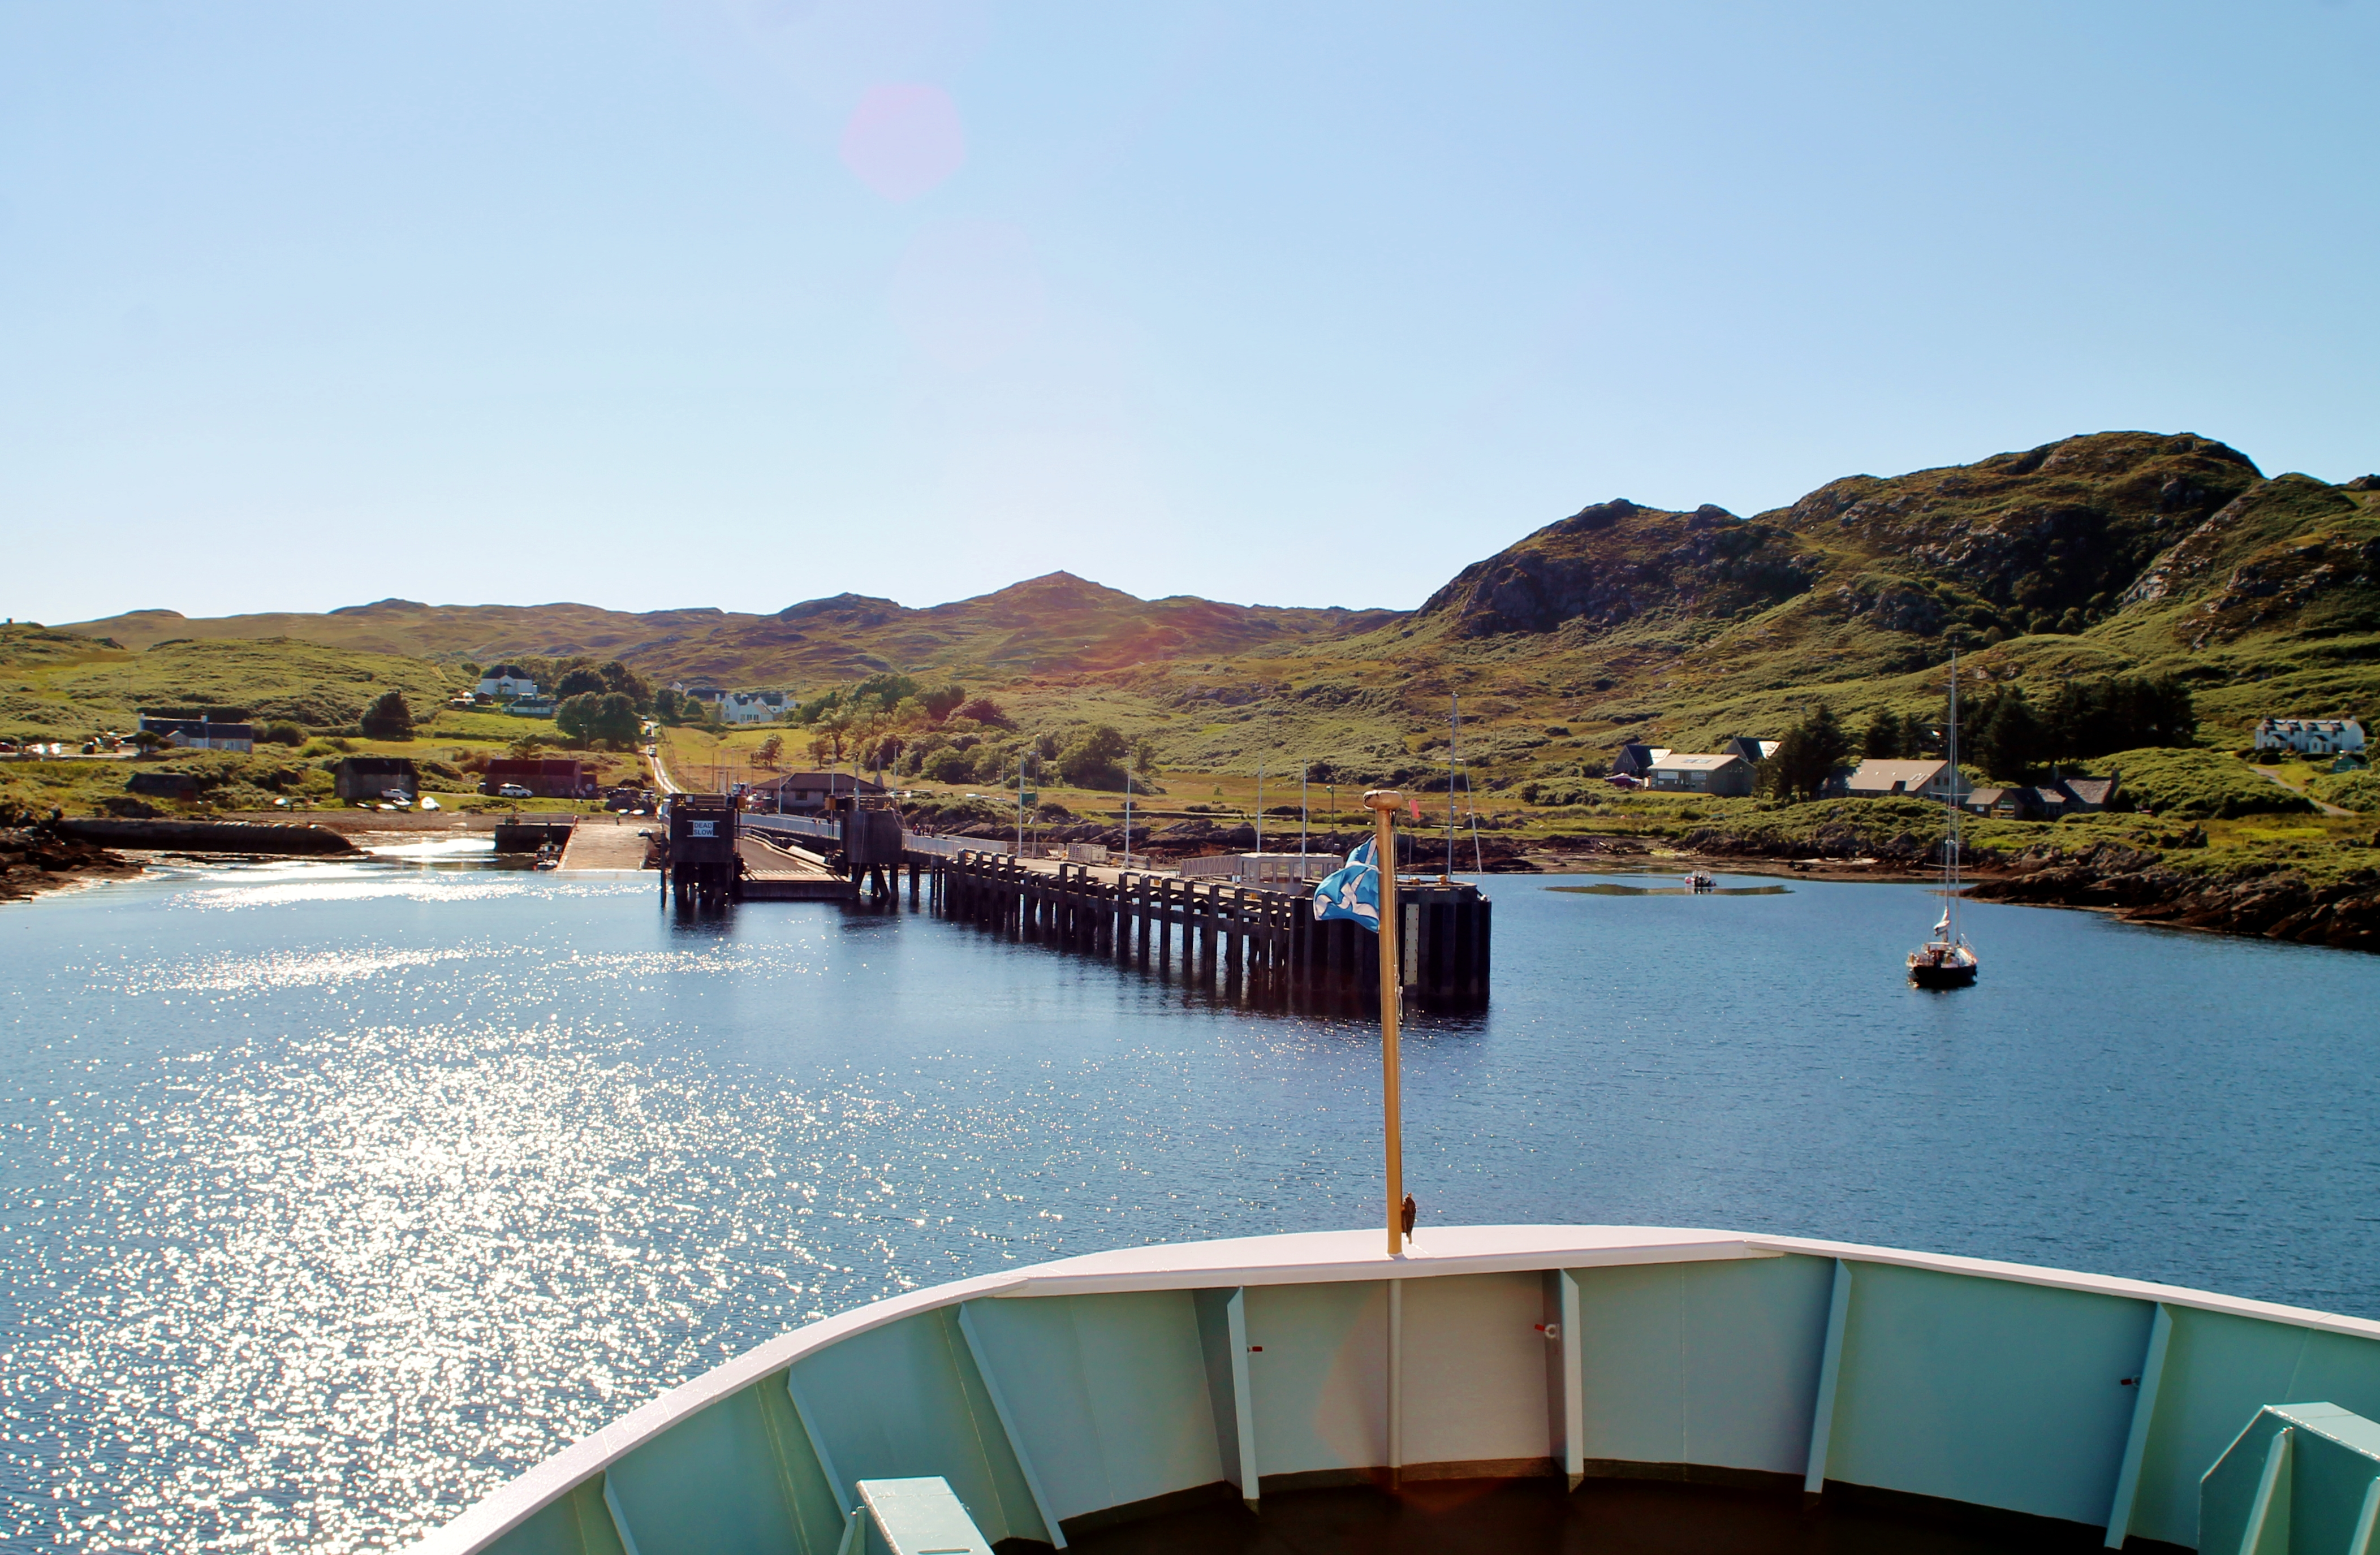 Approaching Colonsay